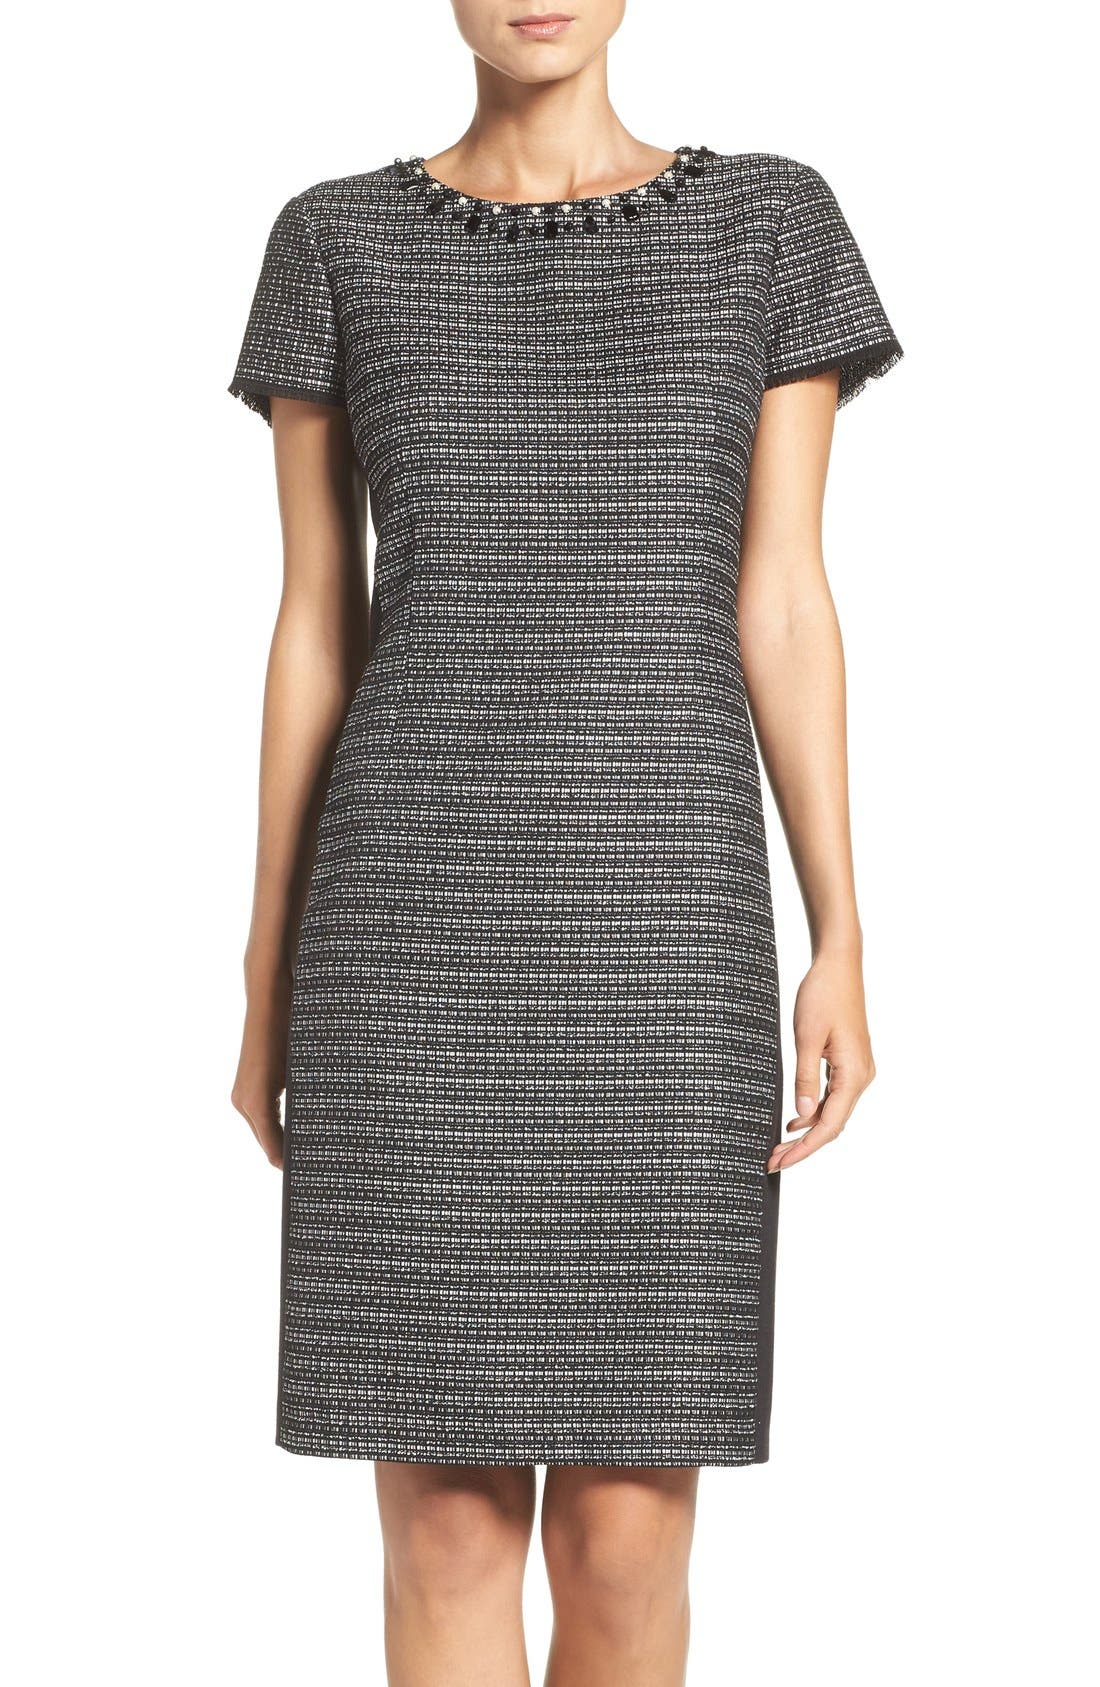 ELLEN TRACY Embellished Tweed Shift Dress